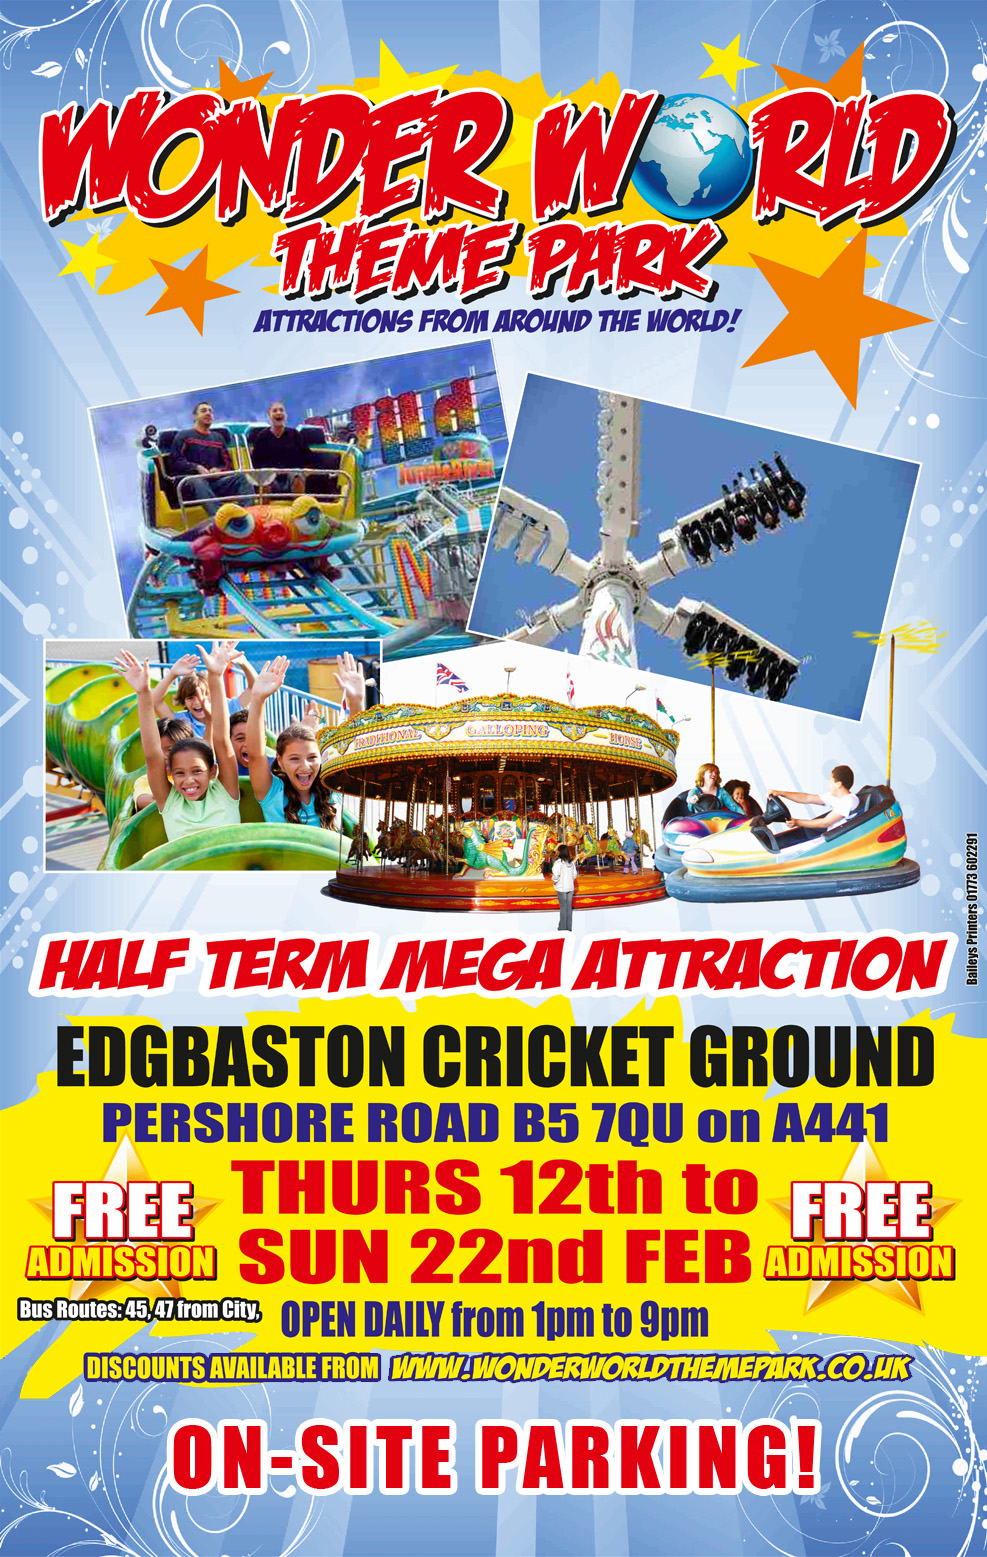 Edgbaston Cricket Ground Thursday 12th Feb to Sunday 22nd Feb 2015